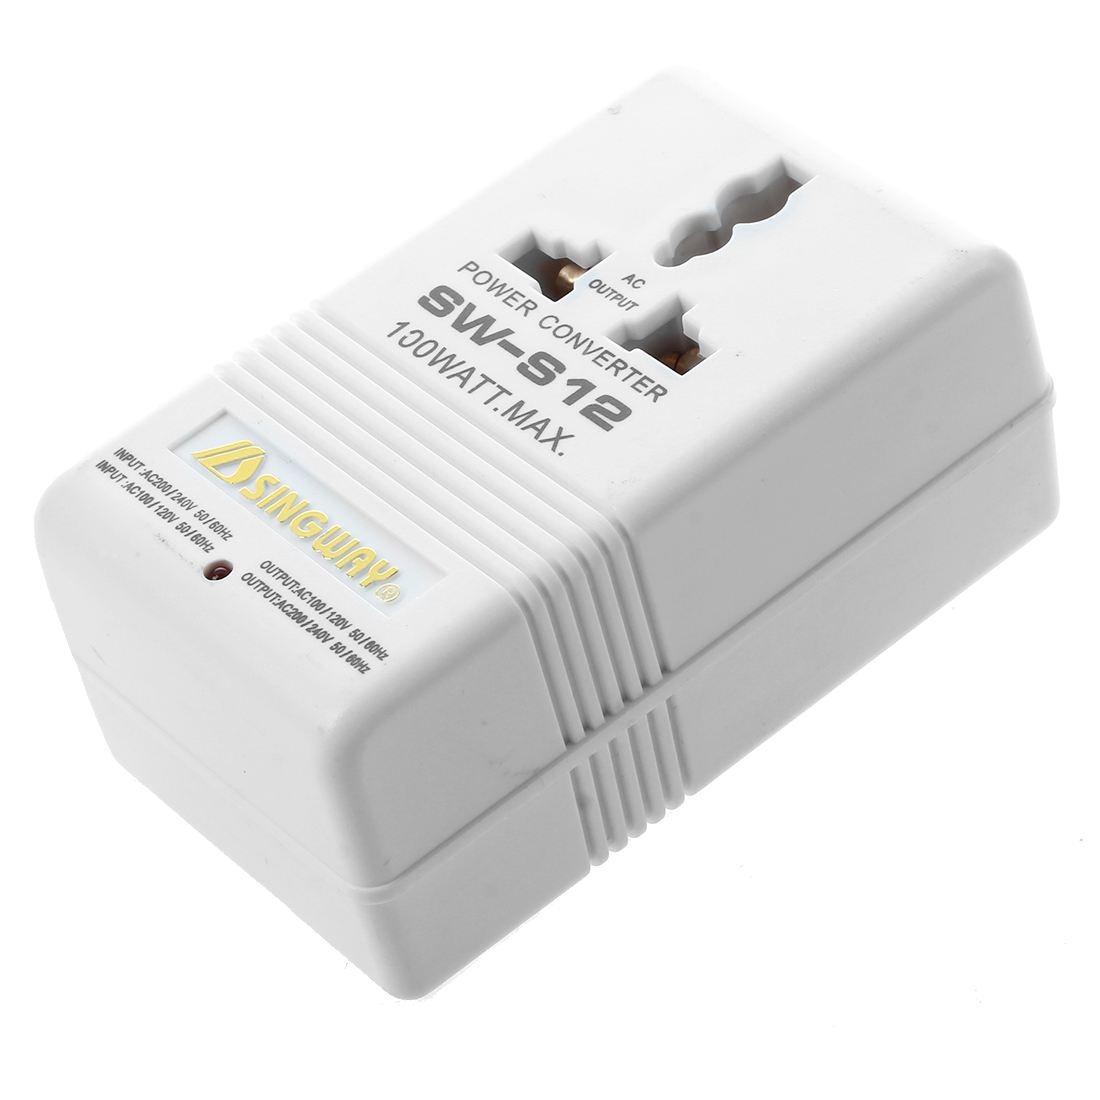 SINGWAY 100W 110V/120V to 220V/240V Step-Up&Down Voltage Converter Transformer Travel White 1pcs lot sh b17 50w 220v to 110v 110v to 220v